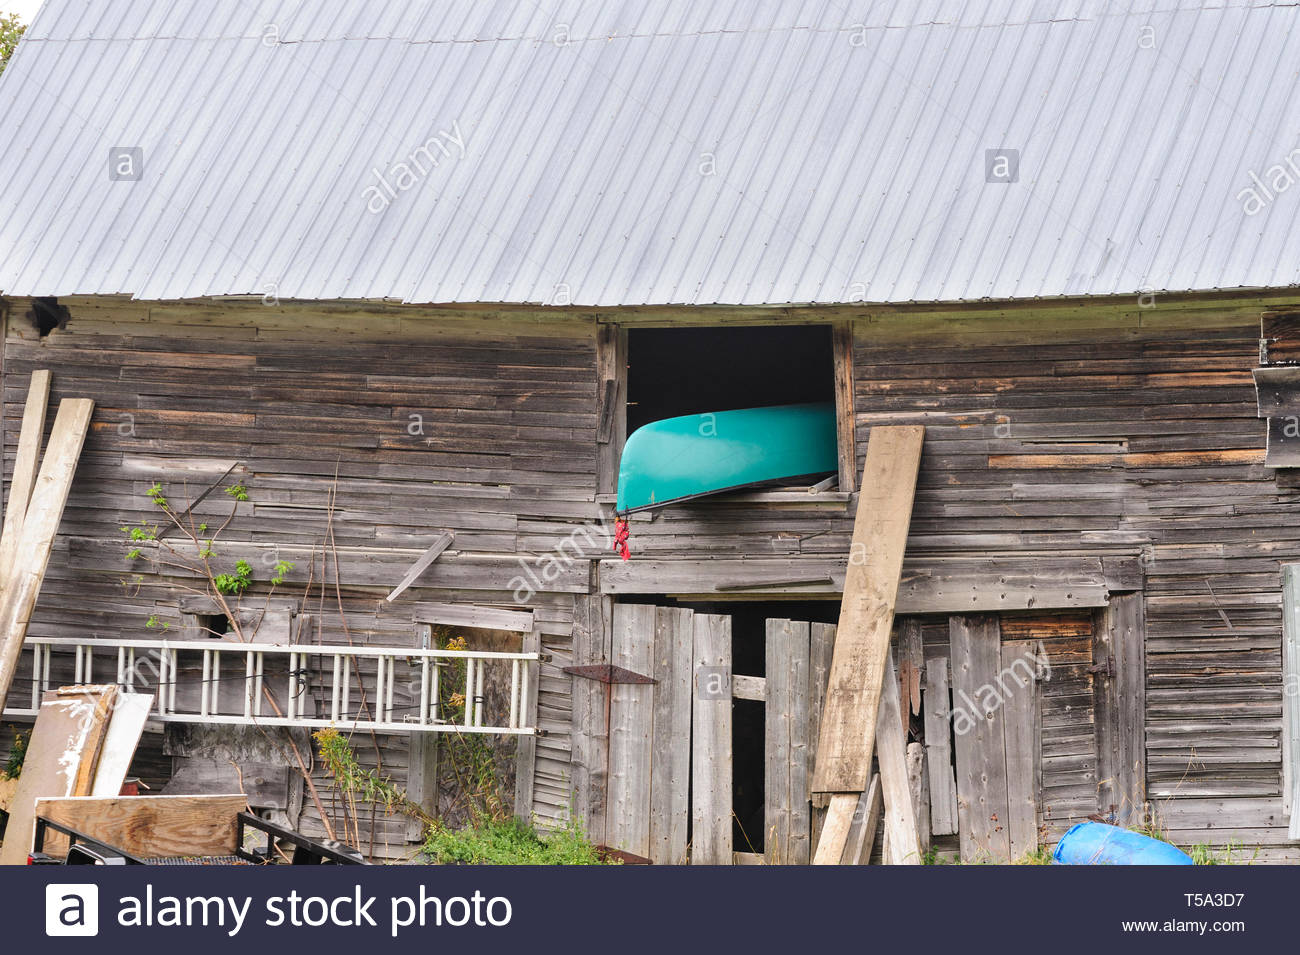 Canoe sticking out of upper story of old wood barn - Stock Image